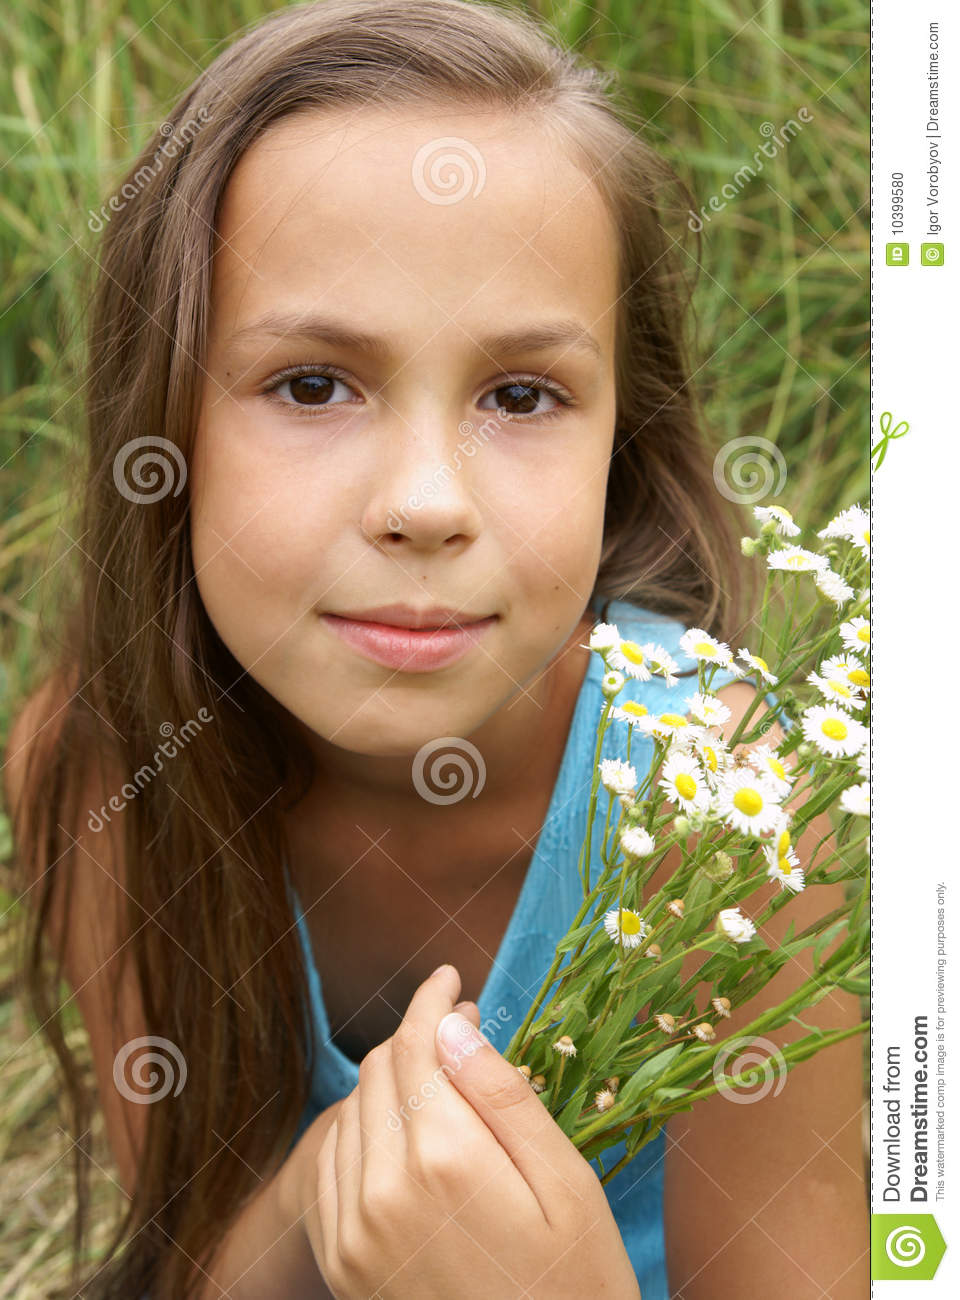 Beautiful preteen girl in blue dress with field flowers outdoors.